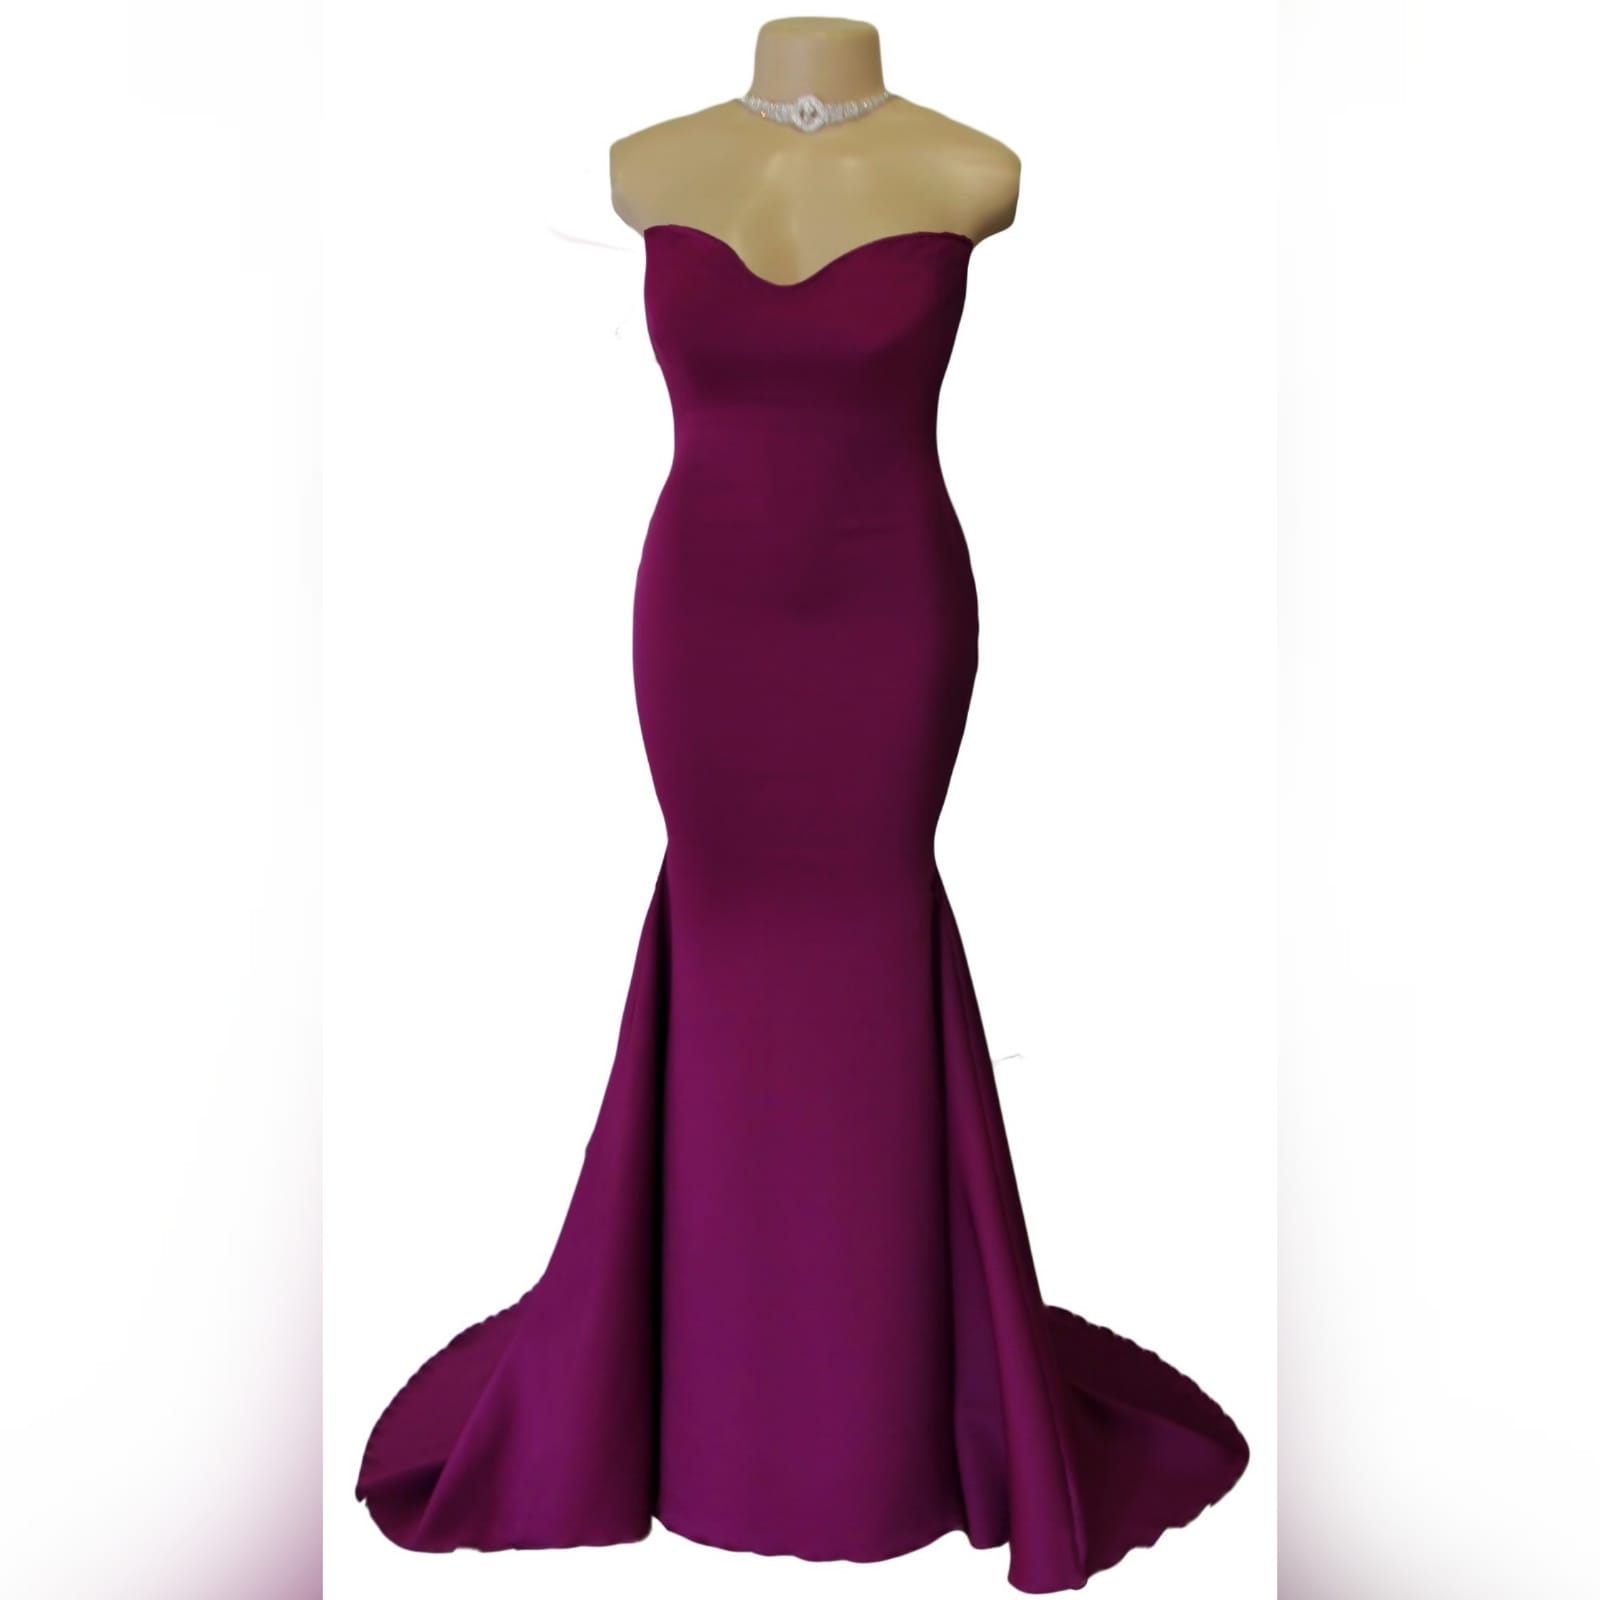 Fuschia soft mermaid tube evening dress 1 fuschia soft mermaid tube evening dress.   with a sweetheart neckline, straight back and a train. Excludes accessory.